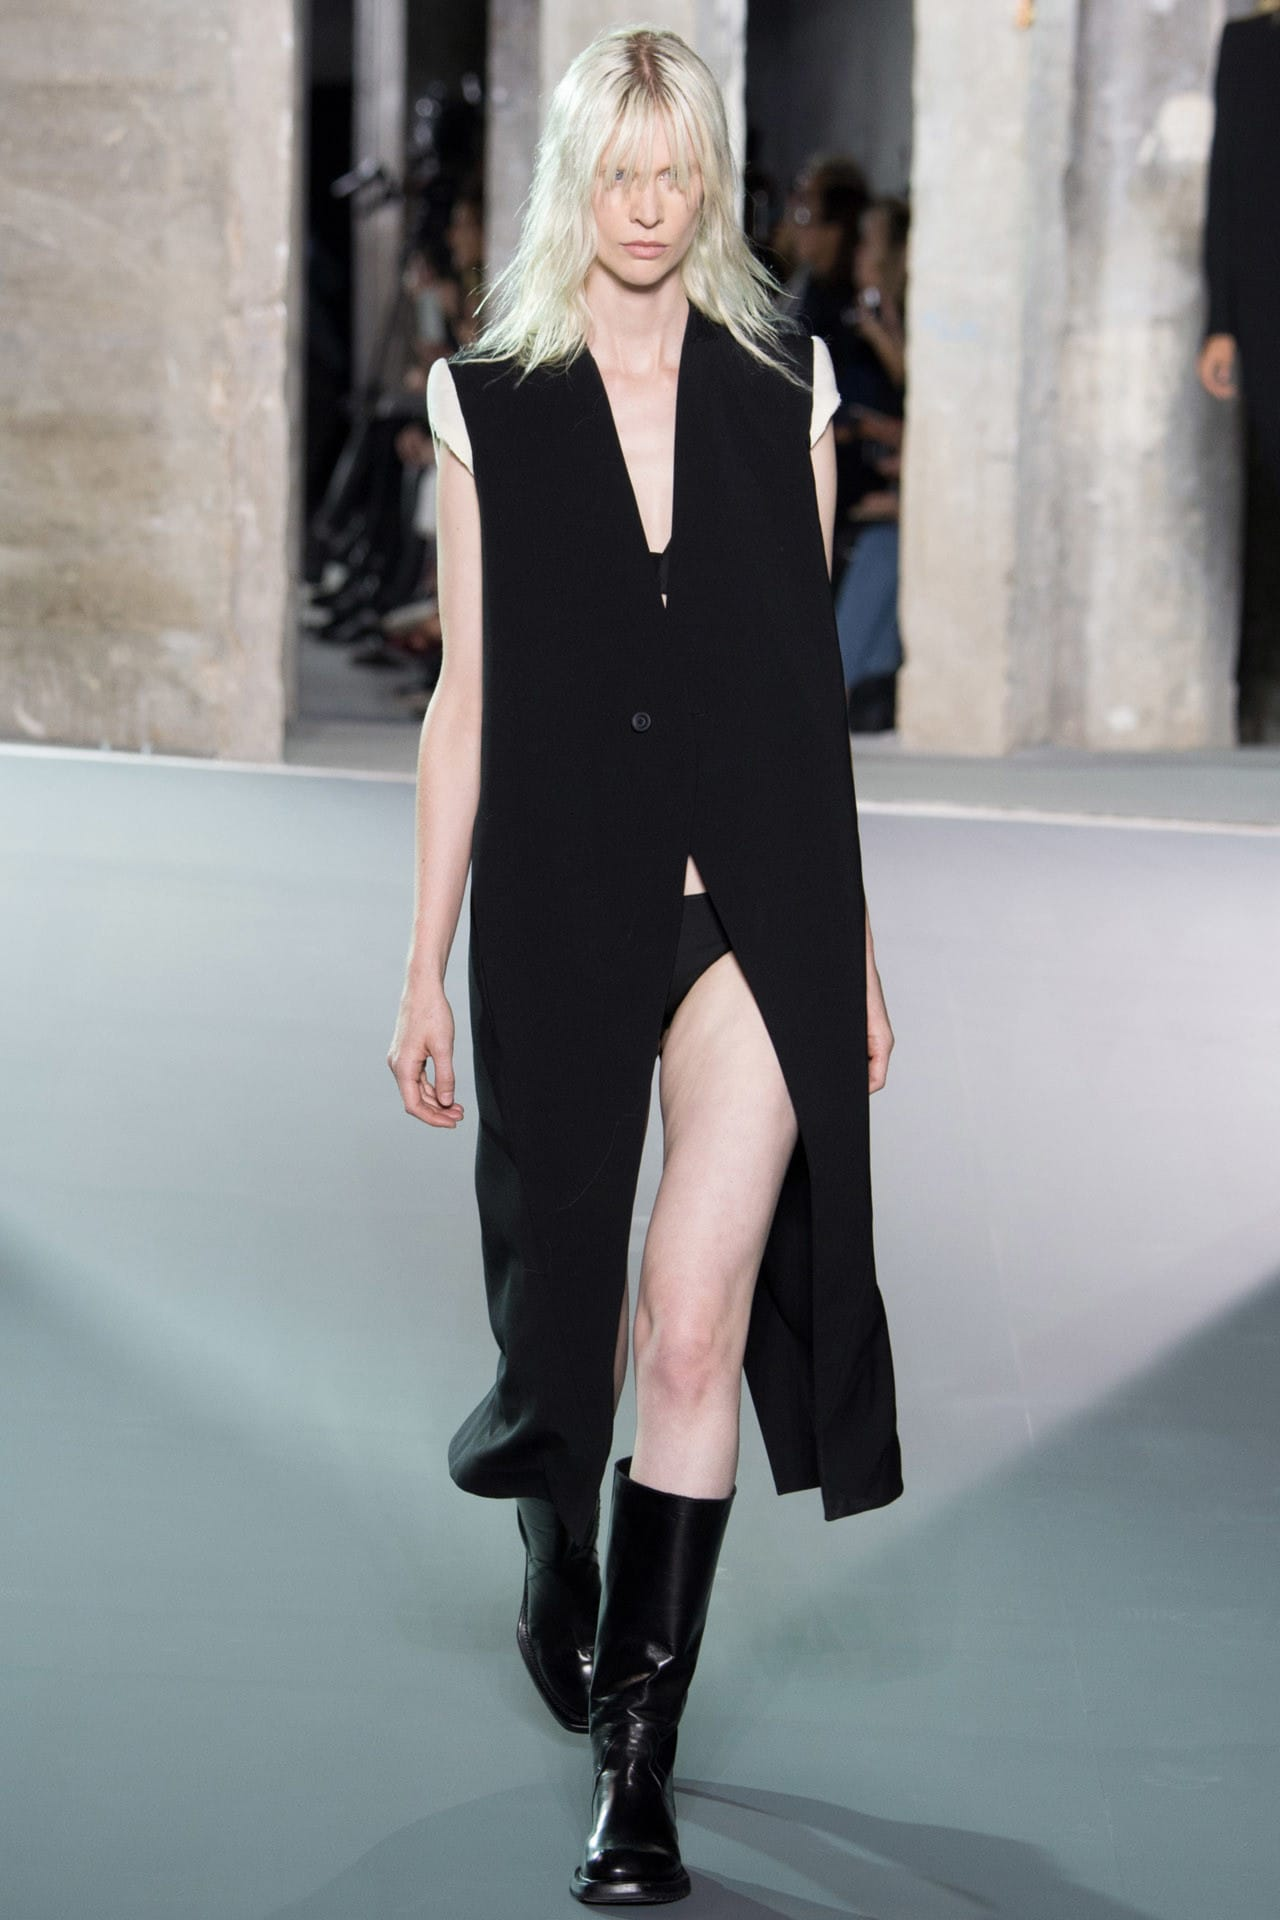 Rick Owens ready-to-wear spring/summer '16